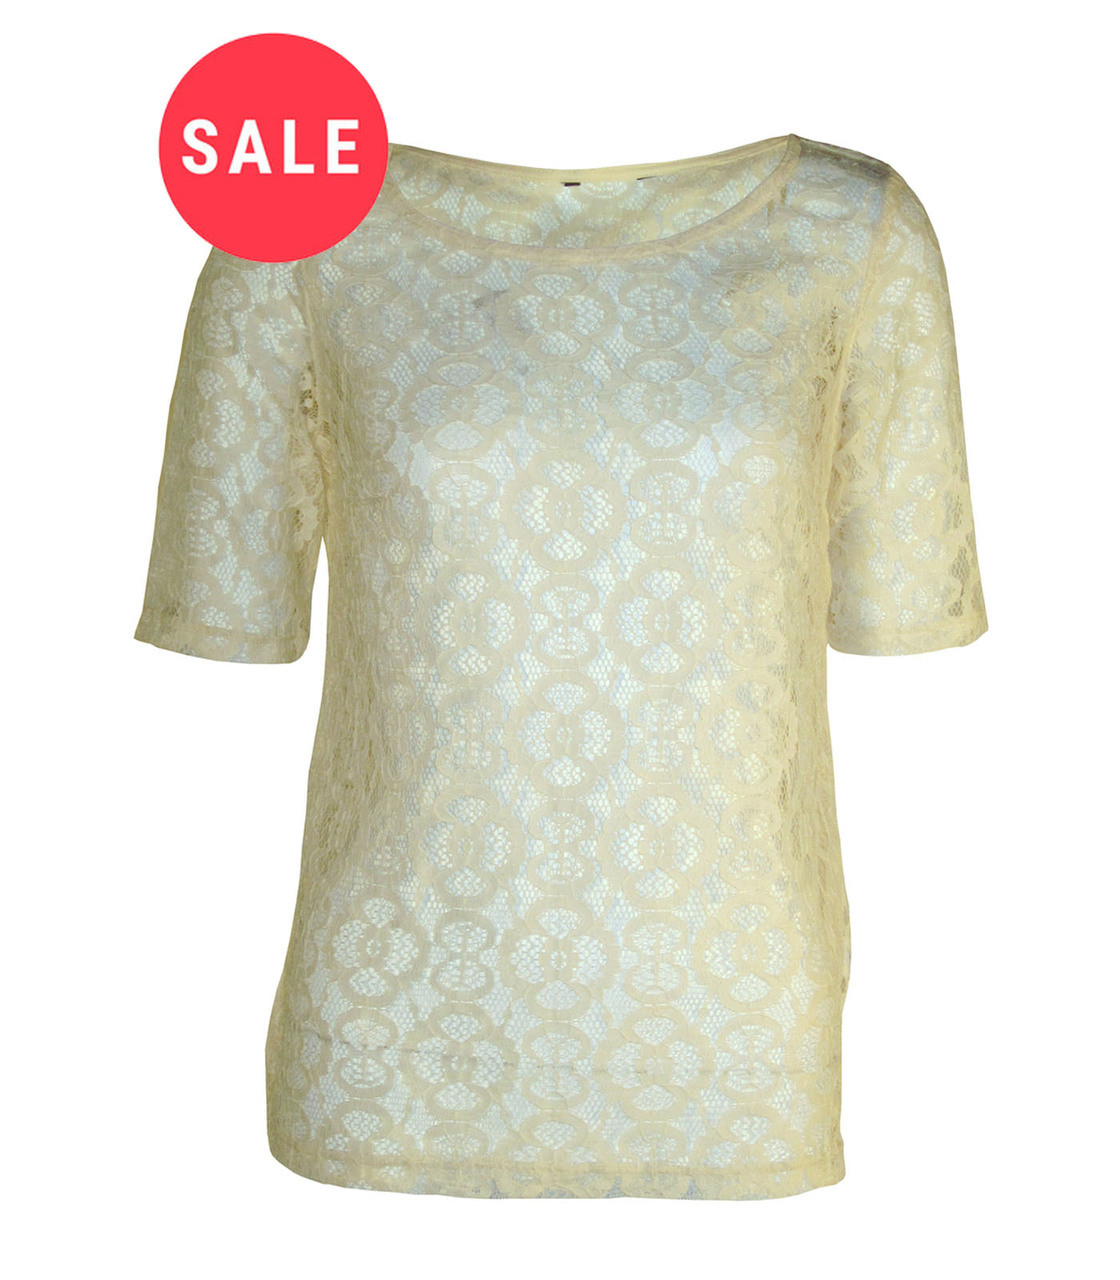 c0d6f516682532 Ex Major High Street Ladies Lace Blouse | Rivers Trading | Ex Next Clothing  Suppliers | Clothing Wholesalers | Ex High Street | Wholesale Clothing | UK  ...